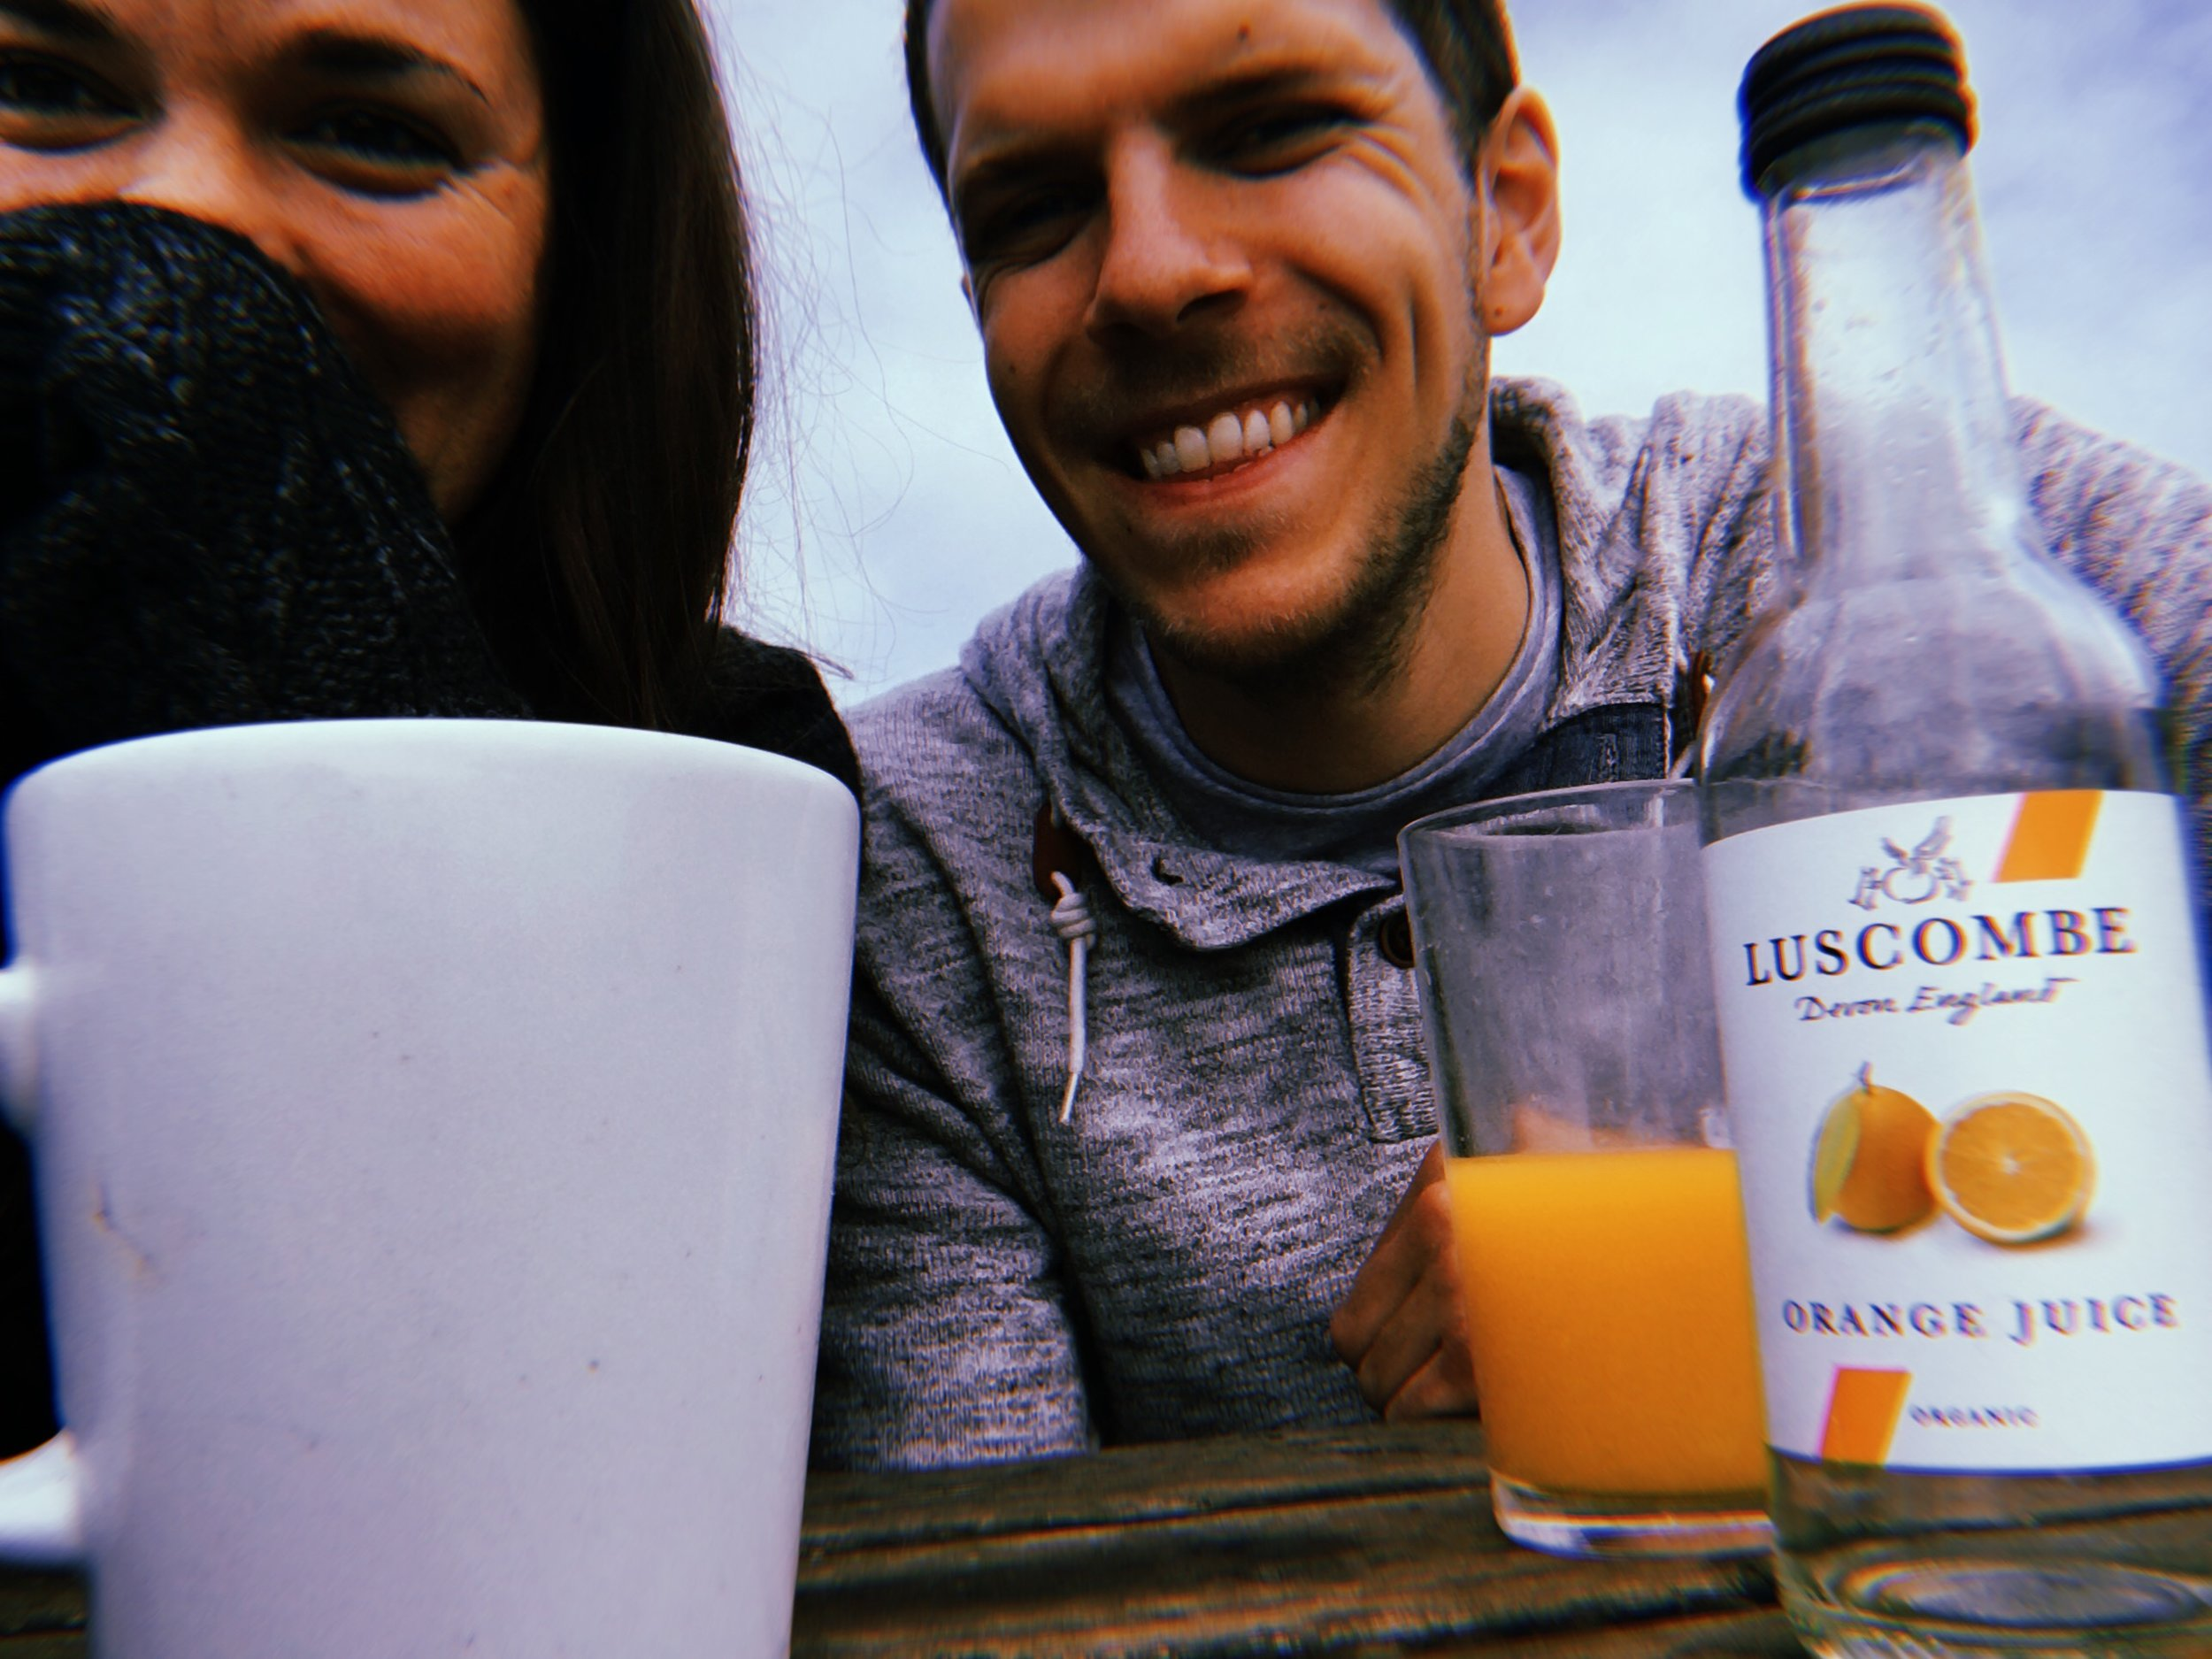 LUKE + I IN BEER, DEVONSHIRE AFTER A MORNING TREK TO BRANSCOMBE | AUGUST 2018